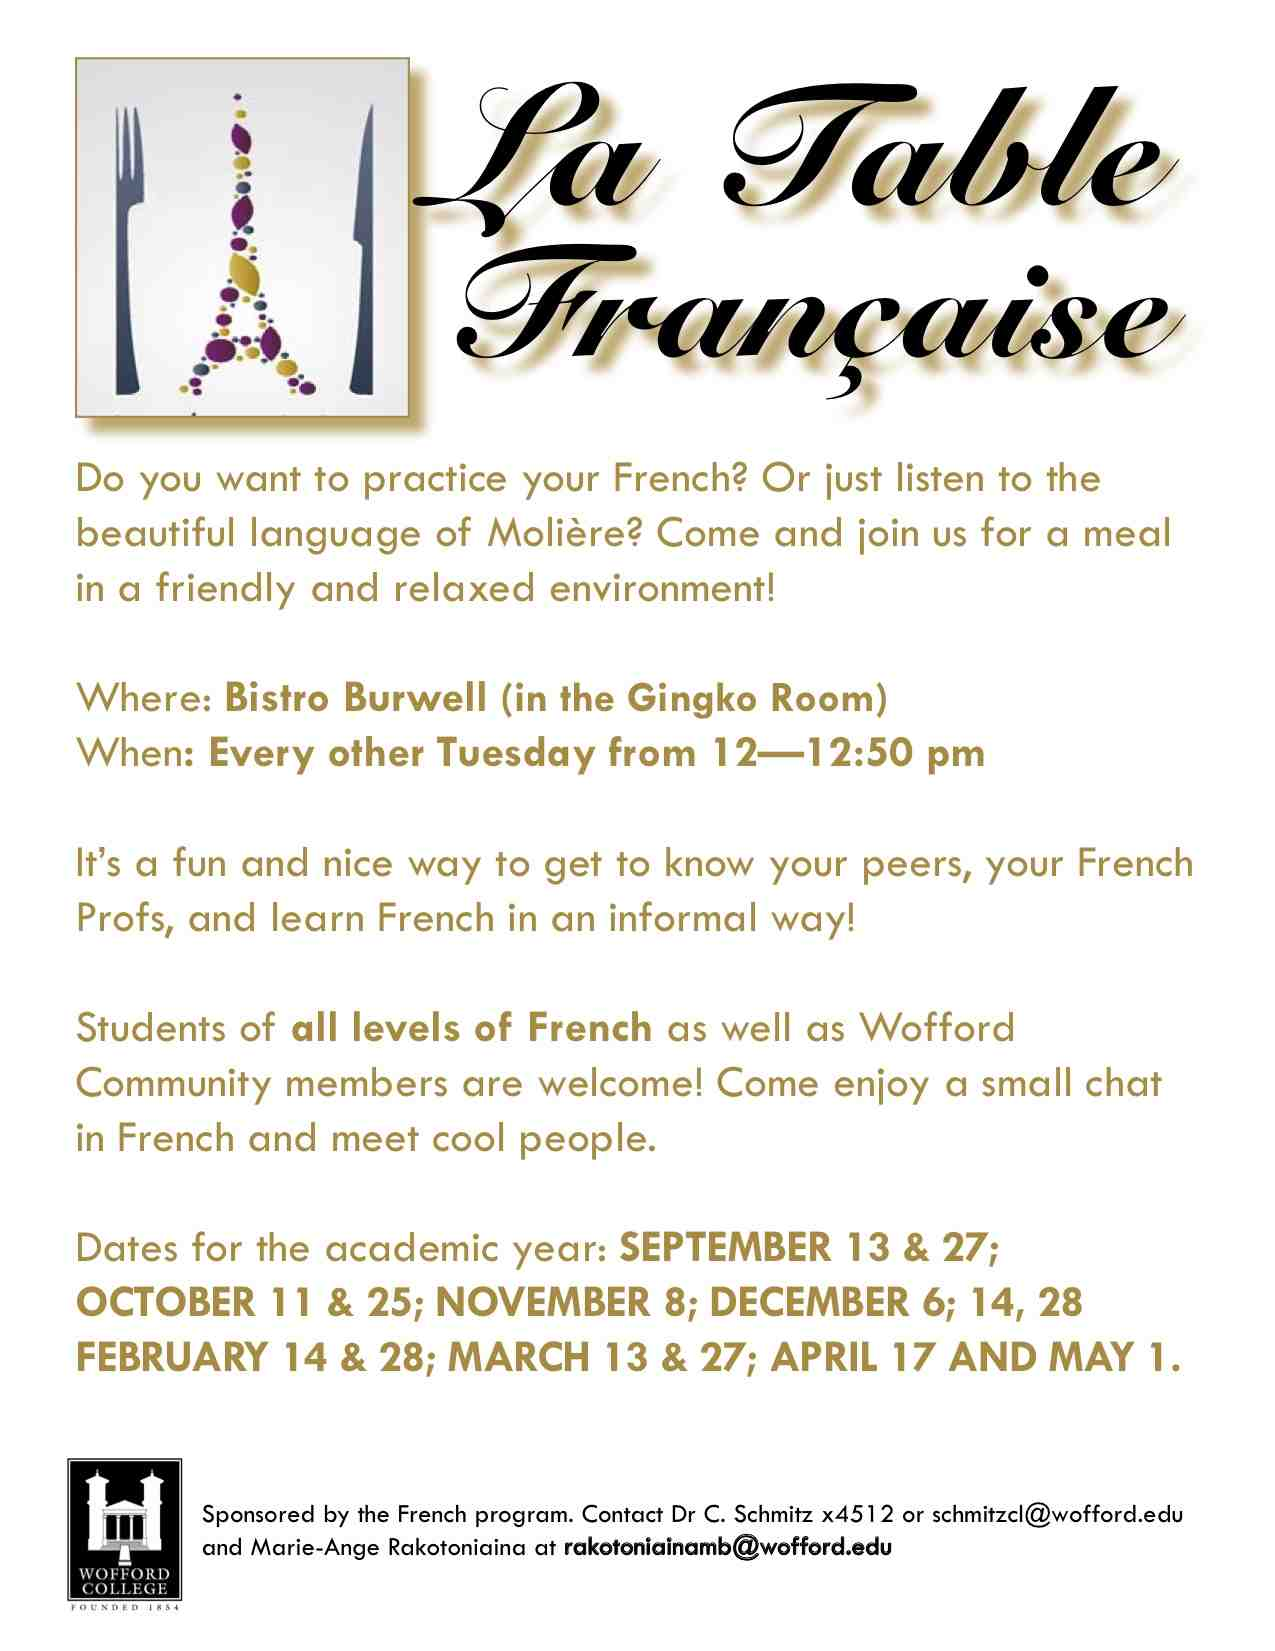 La Table Française, Bi Weekly, Tuesday Lunch Meetings For French Language  Conversation In The Ginko Room In Burwell From 12:00 12:50 P.m.